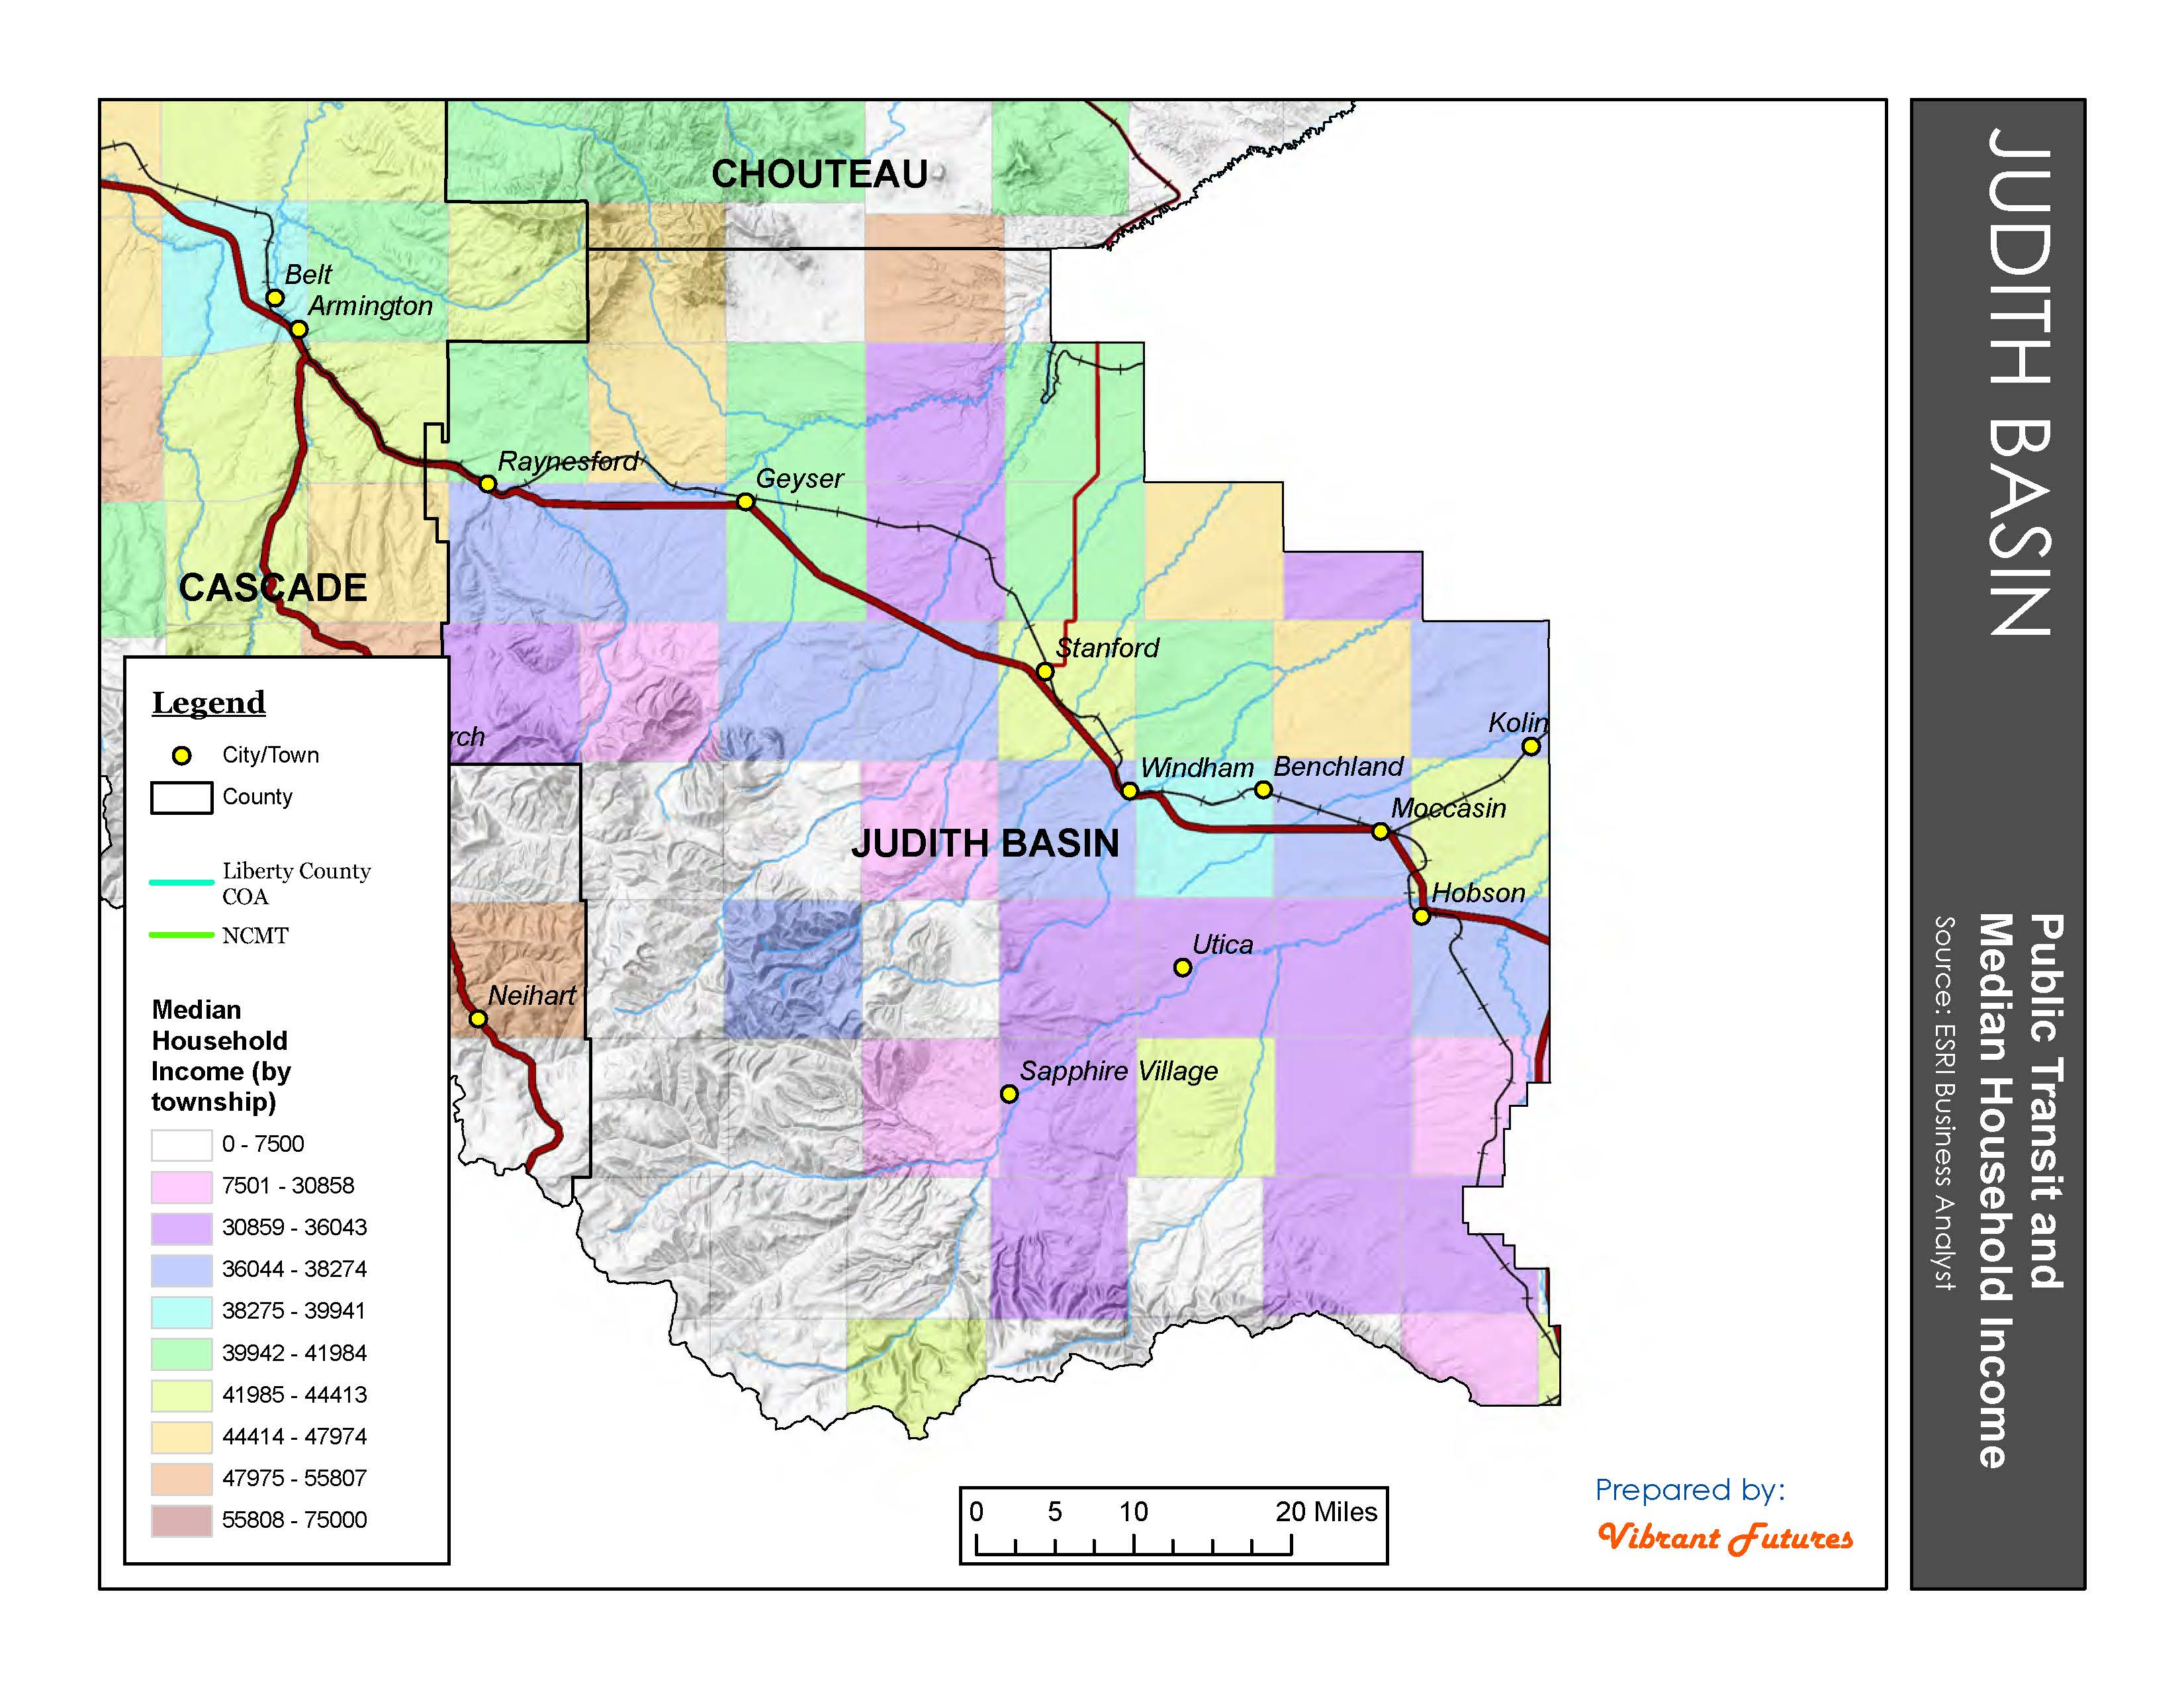 Transit and Income (by Township) Judith Basin County